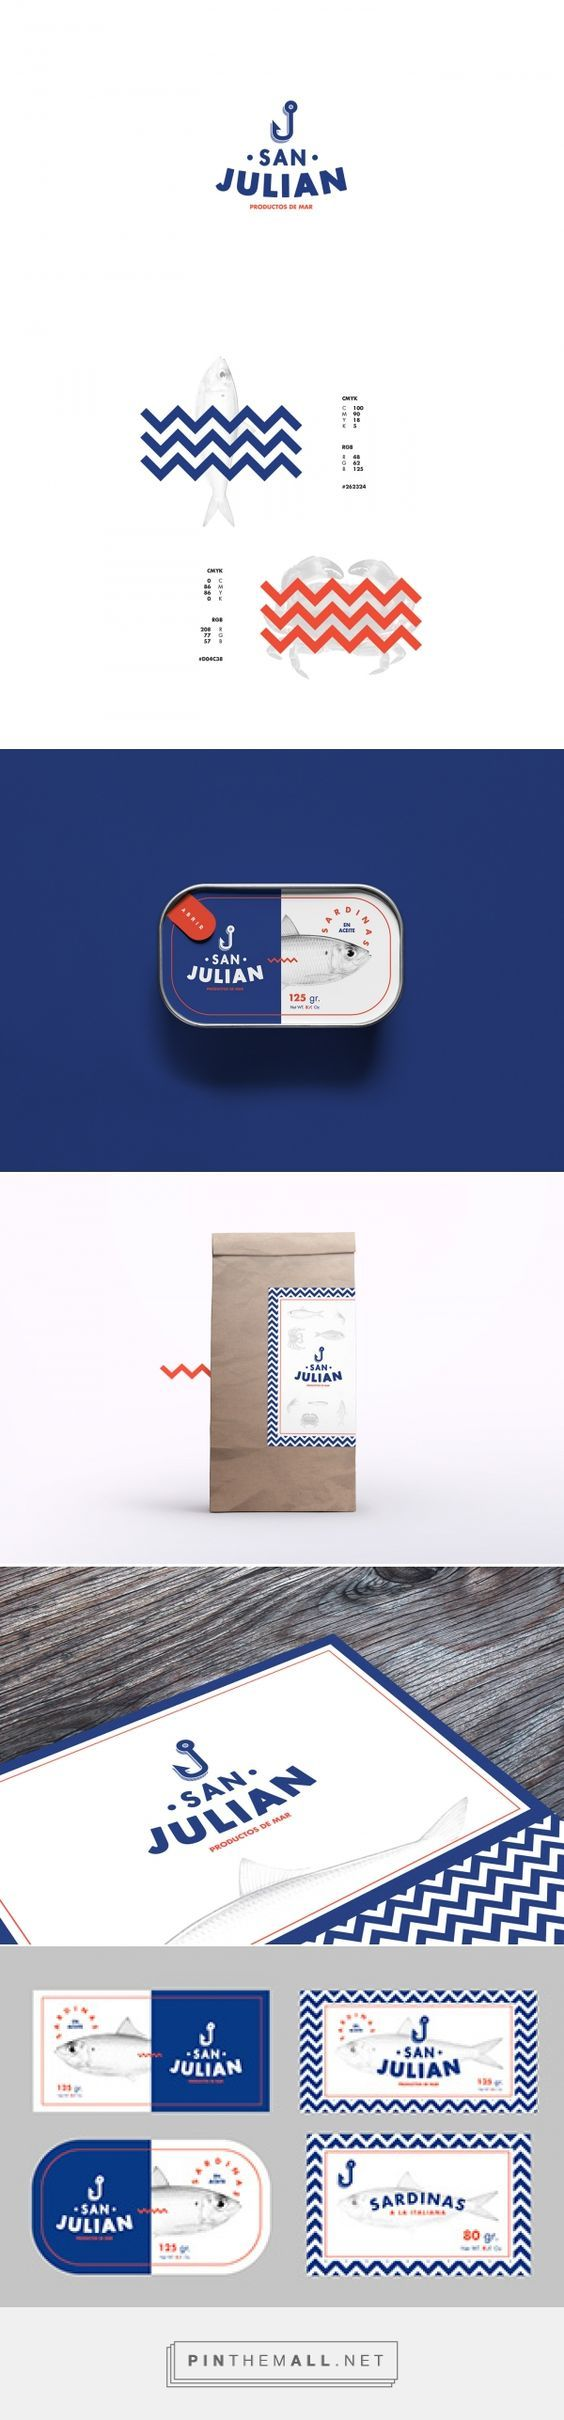 San Julian Branding on Behance | Fivestar Branding – Design and Branding Agency & Inspiration Gallery